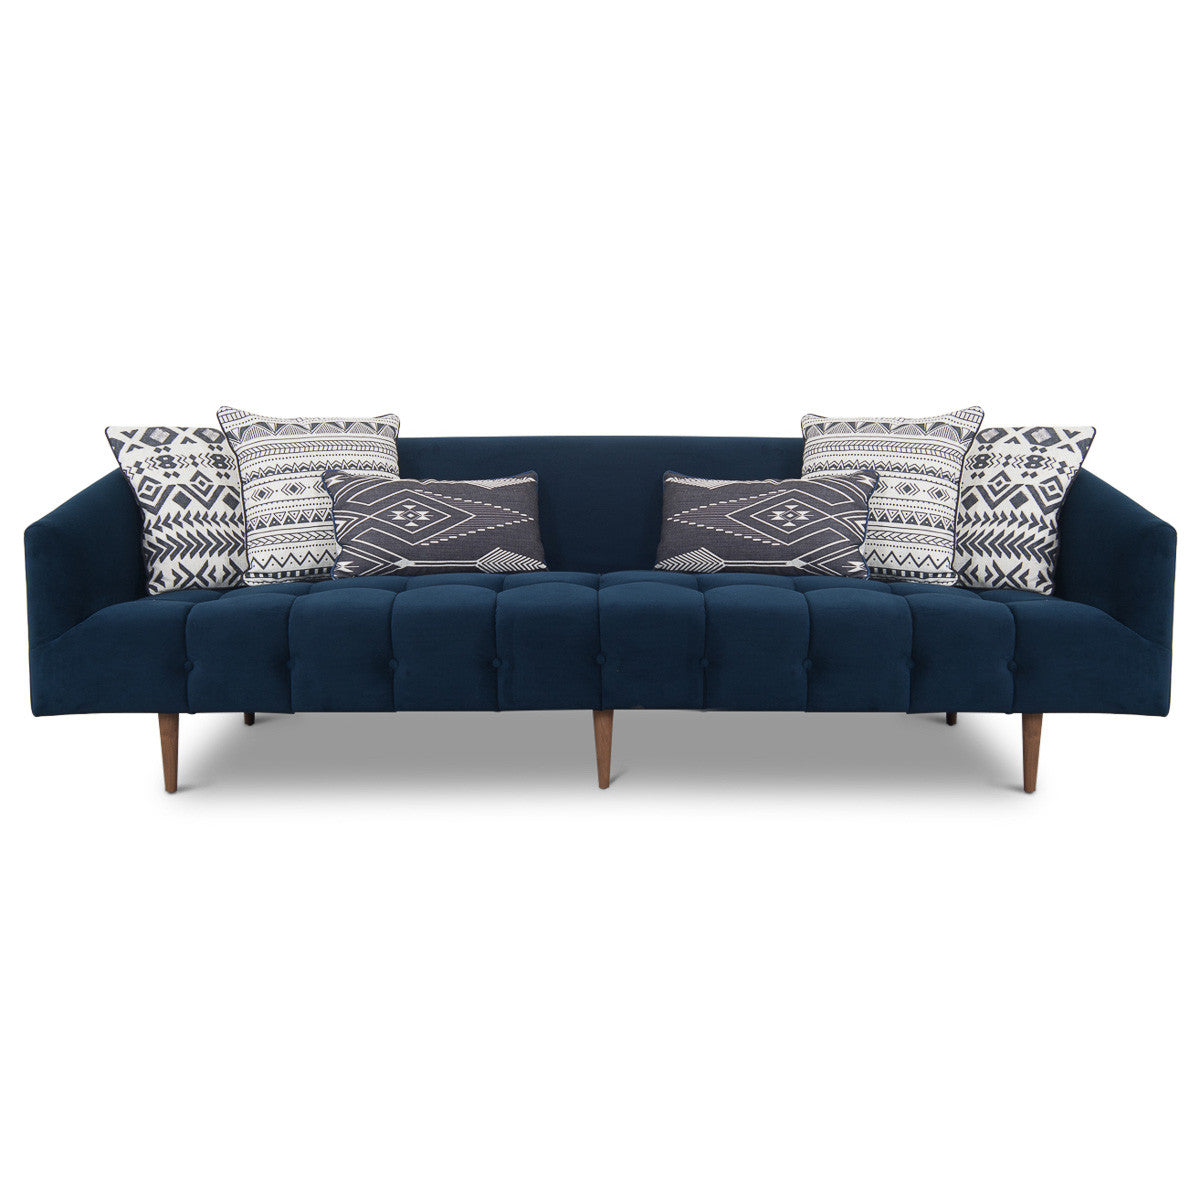 St. Barts Sofa with Biscuit Tufting in Velvet - ModShop1.com